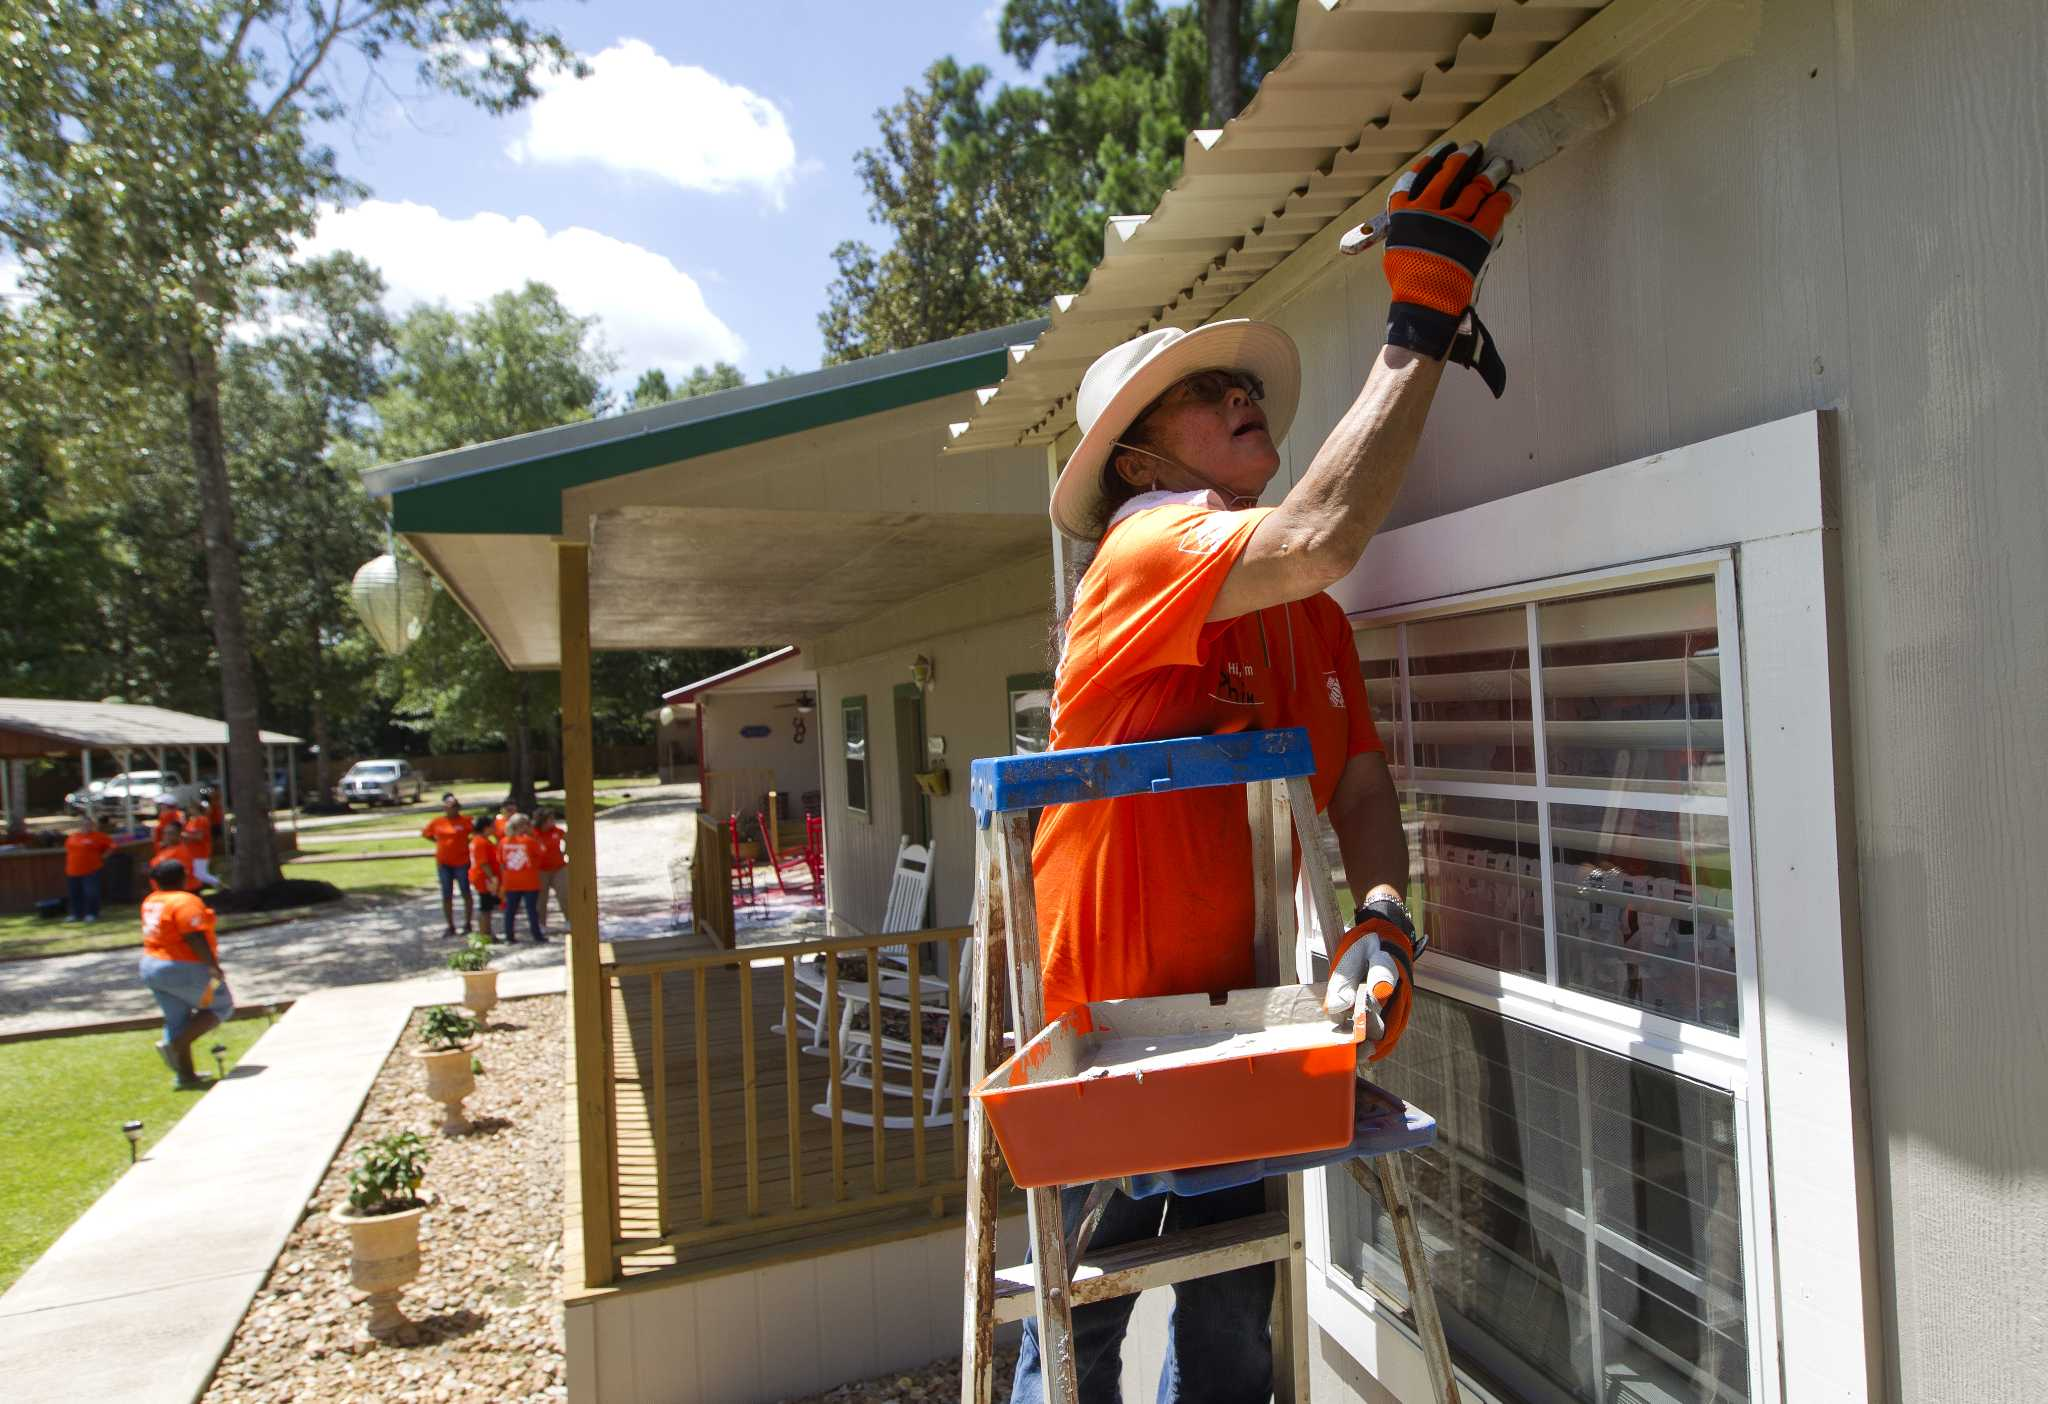 ... Home Depot Helps Grow Hope At Cancer Retreat The Courier ...